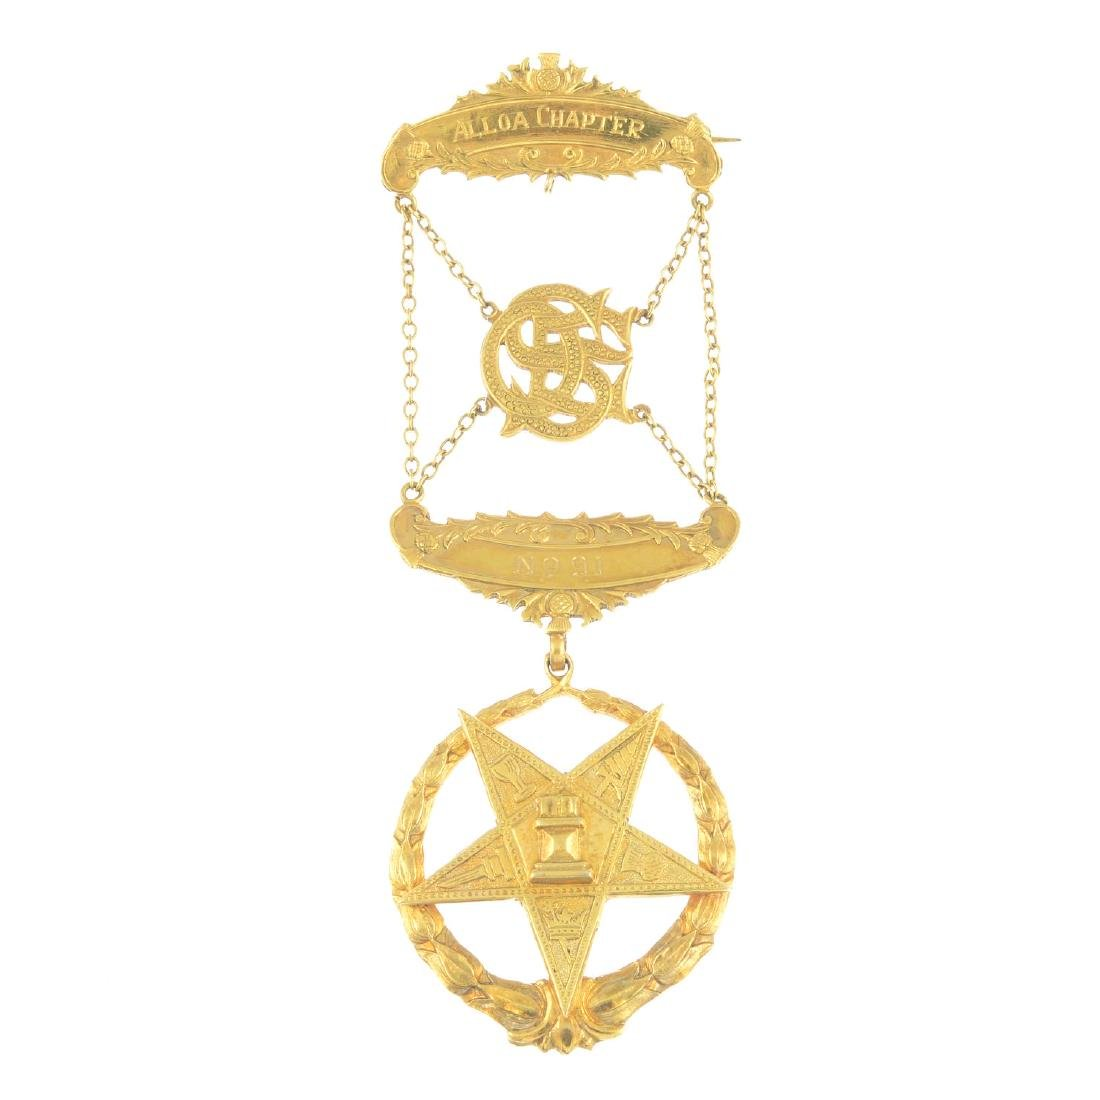 A mid 20th century 9ct gold Masonic brooch. The 'Order